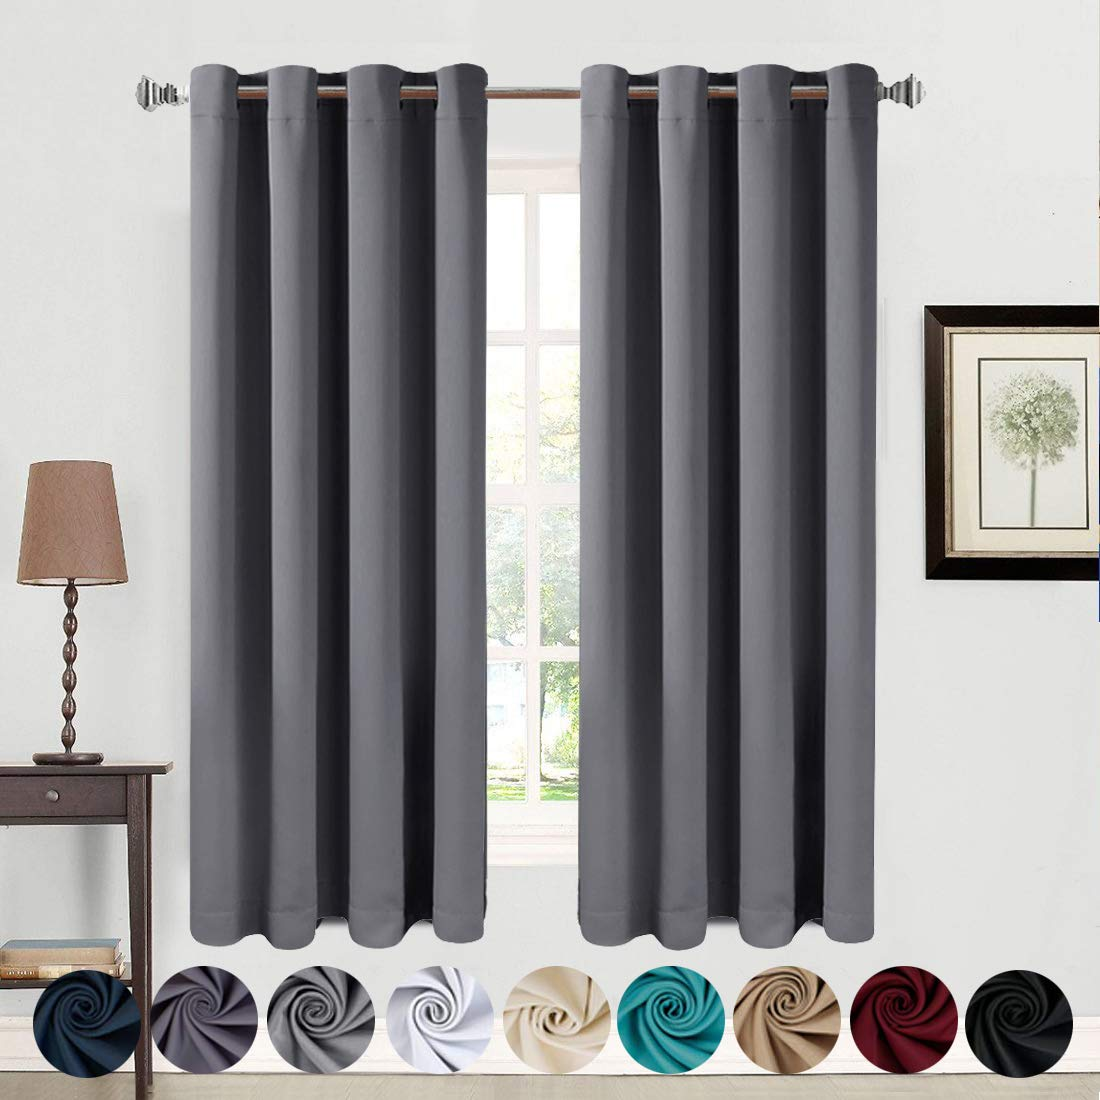 dad71a020274 Amazon.com: Balichun Blackout Curtains Thermal Insulated Grommets Darkening  Drapes for Bedroom/Living Room (Dark Grey, W52 x L63 (2 Panels)): Home &  Kitchen